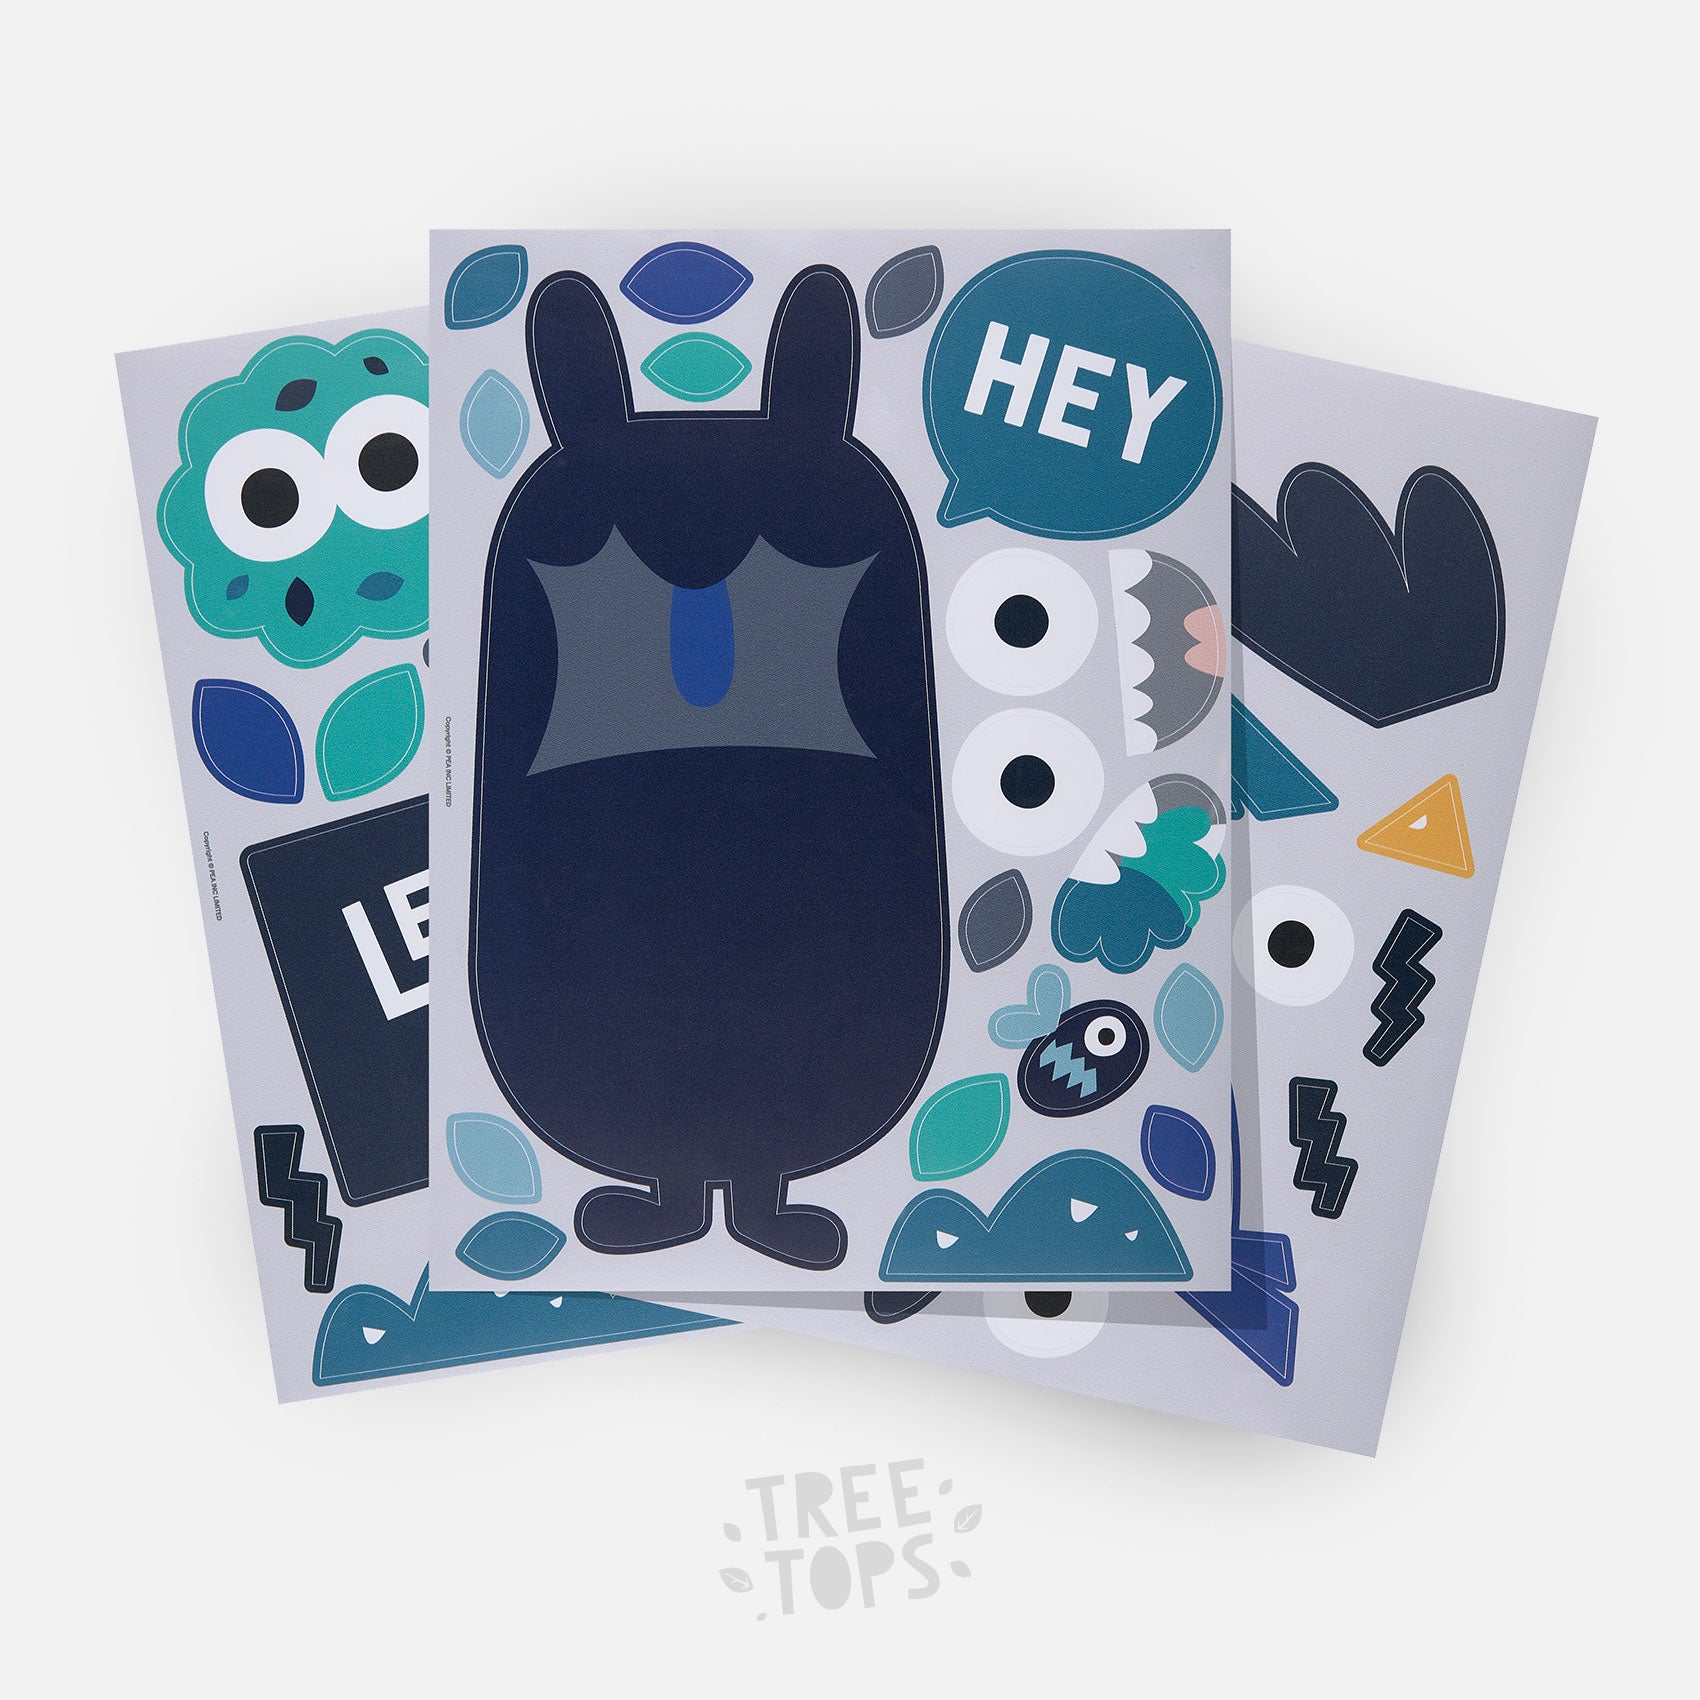 Navy Treeling character at the front of the Treetops wall sticker pack from Pea.